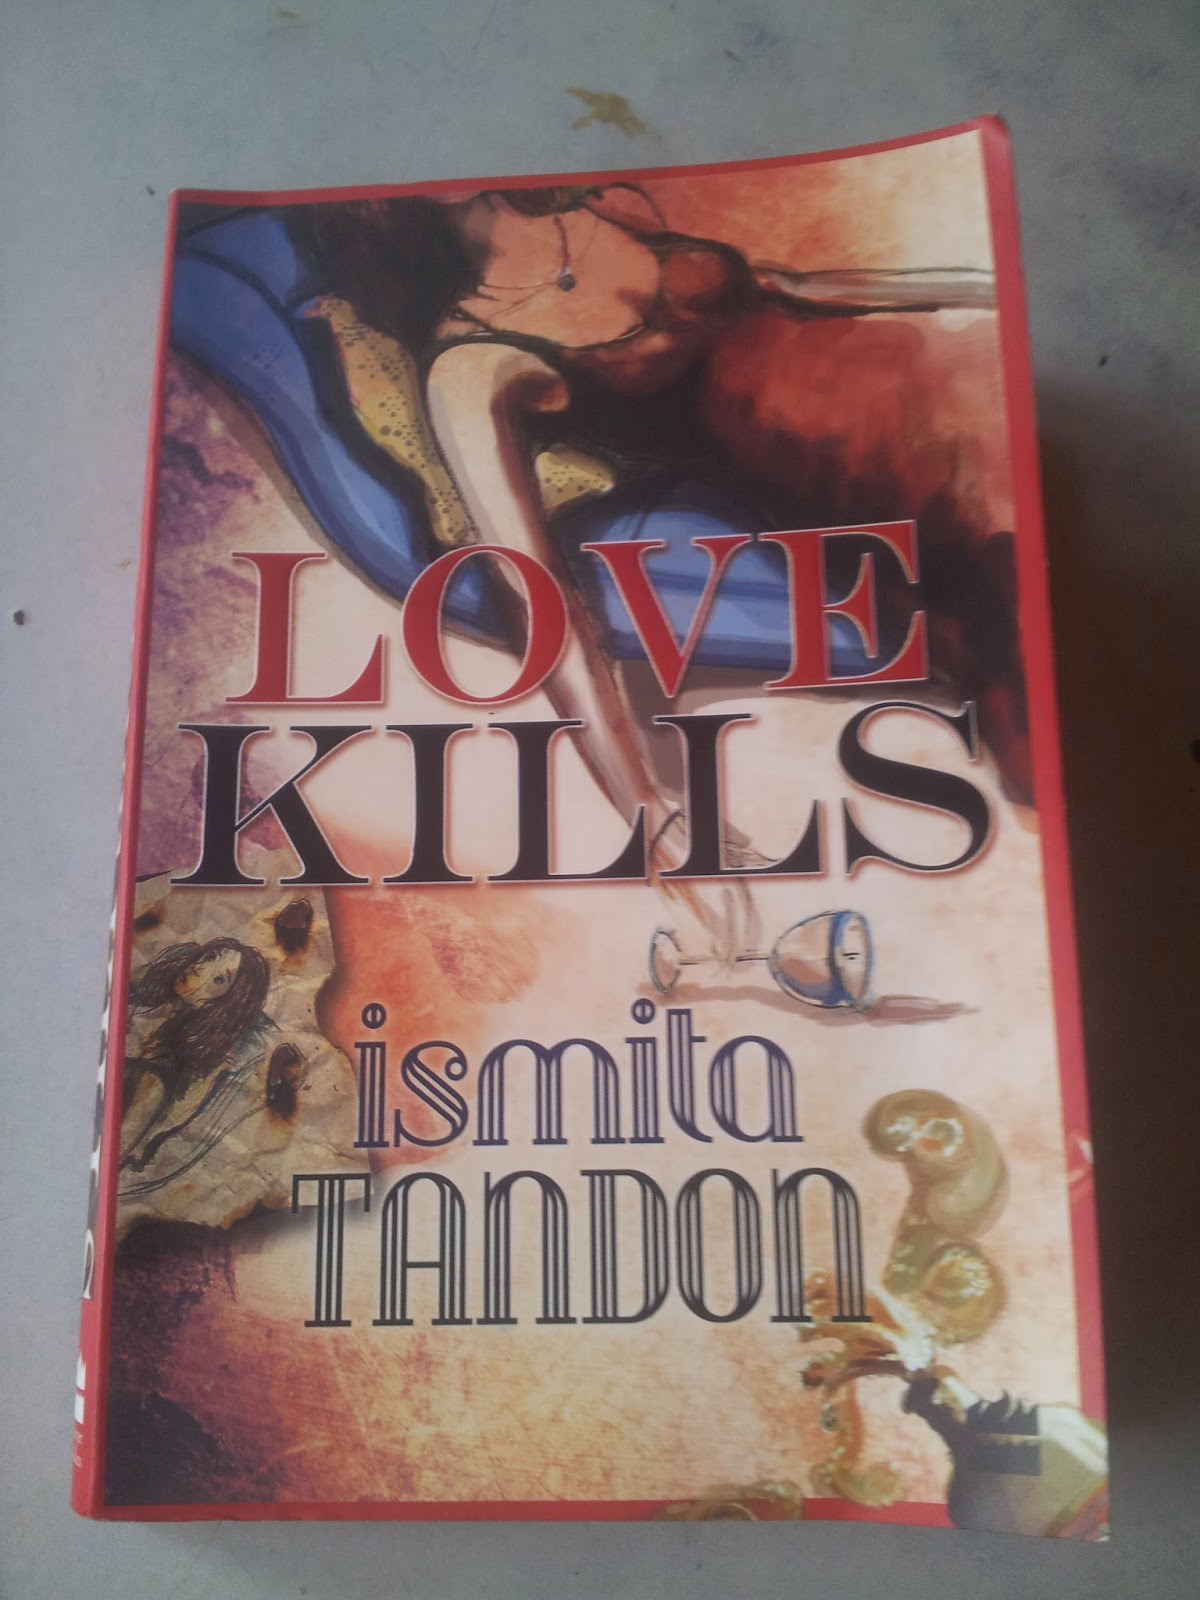 Love kills  book cover